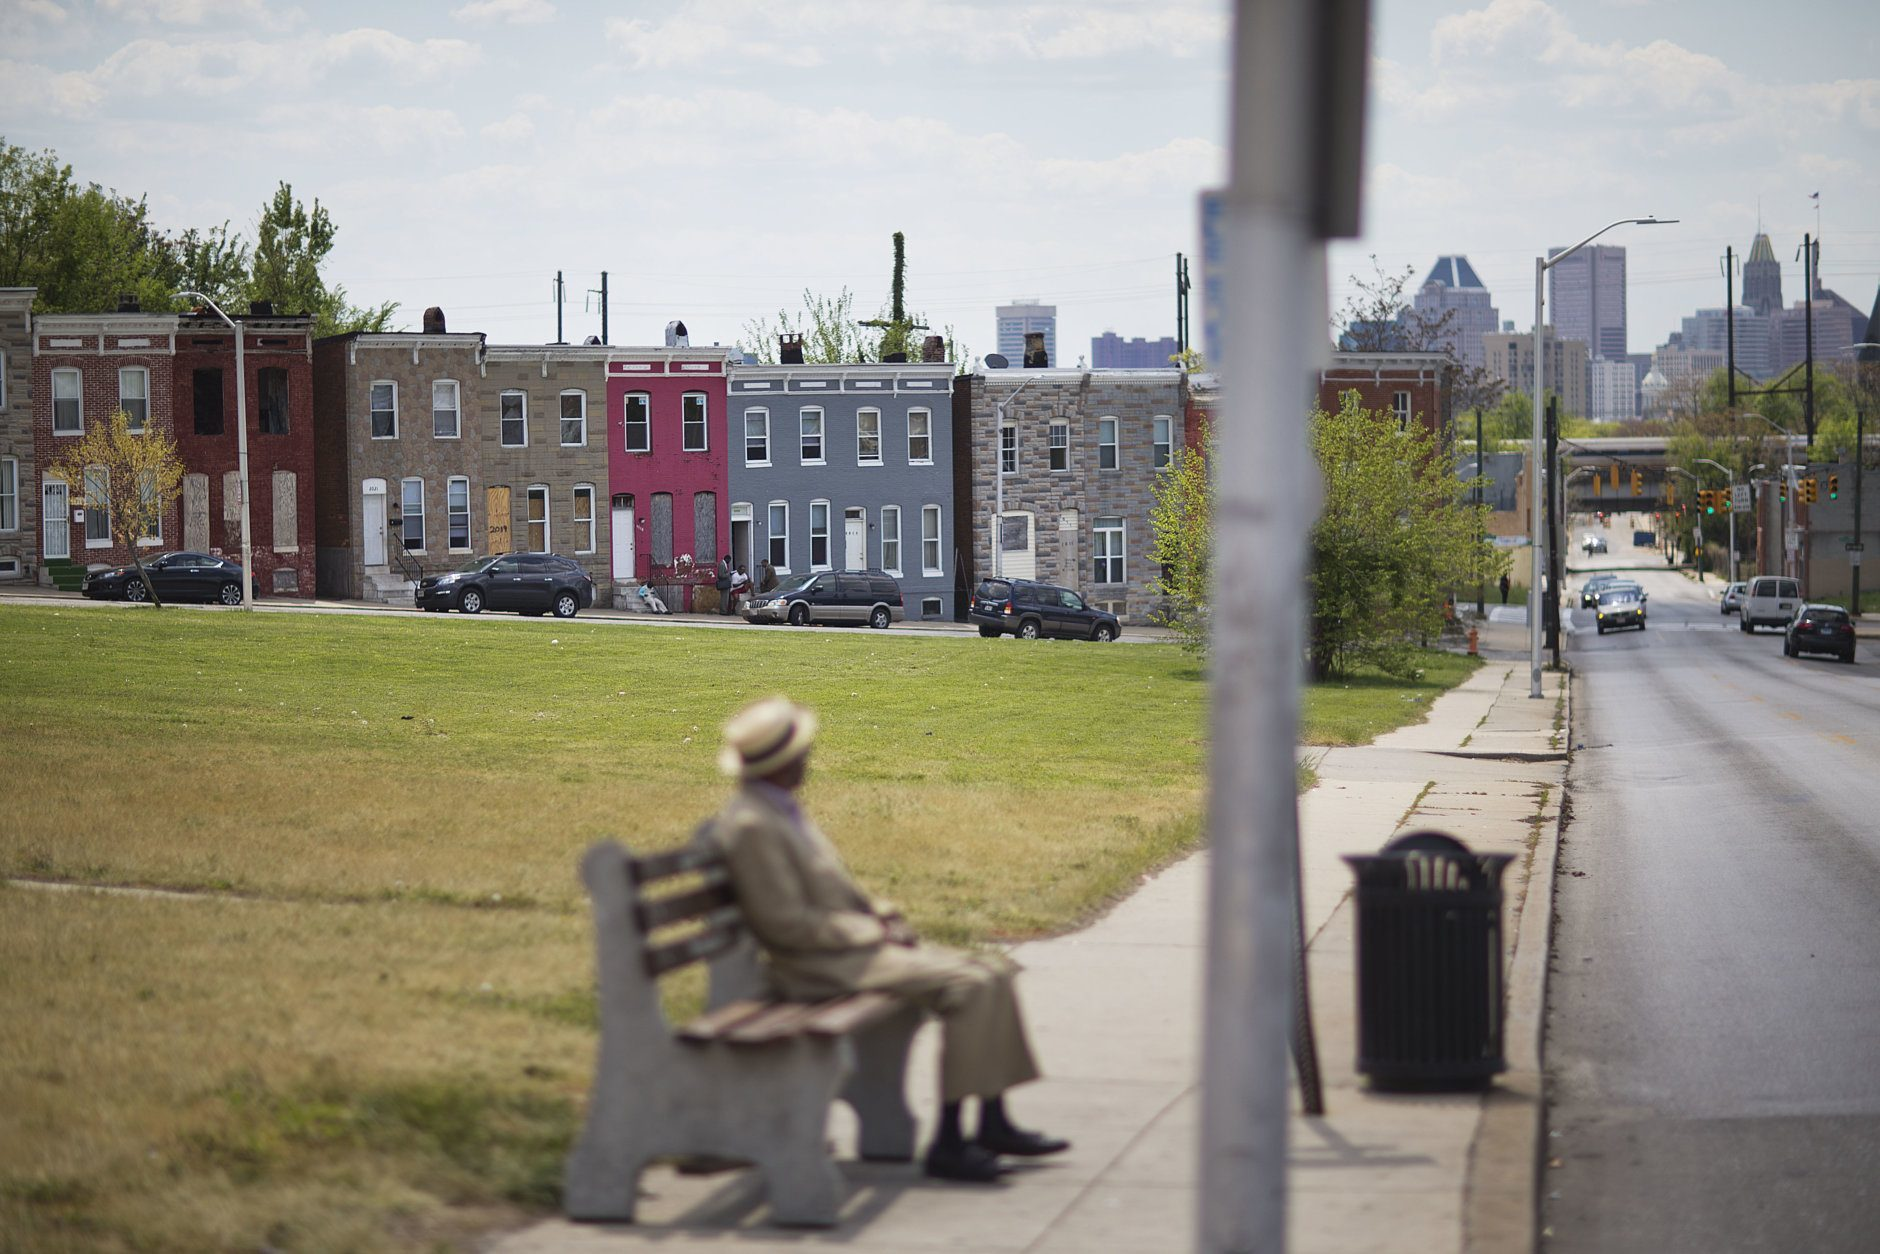 """Row houses sit behind a man waiting at a bus stop, Sunday, May 3, 2015, in Baltimore. Gov. Larry Hogan has called for a statewide """"Day Of Prayer And Peace"""" on Sunday after civil unrest rocked Baltimore. (AP Photo/David Goldman)"""